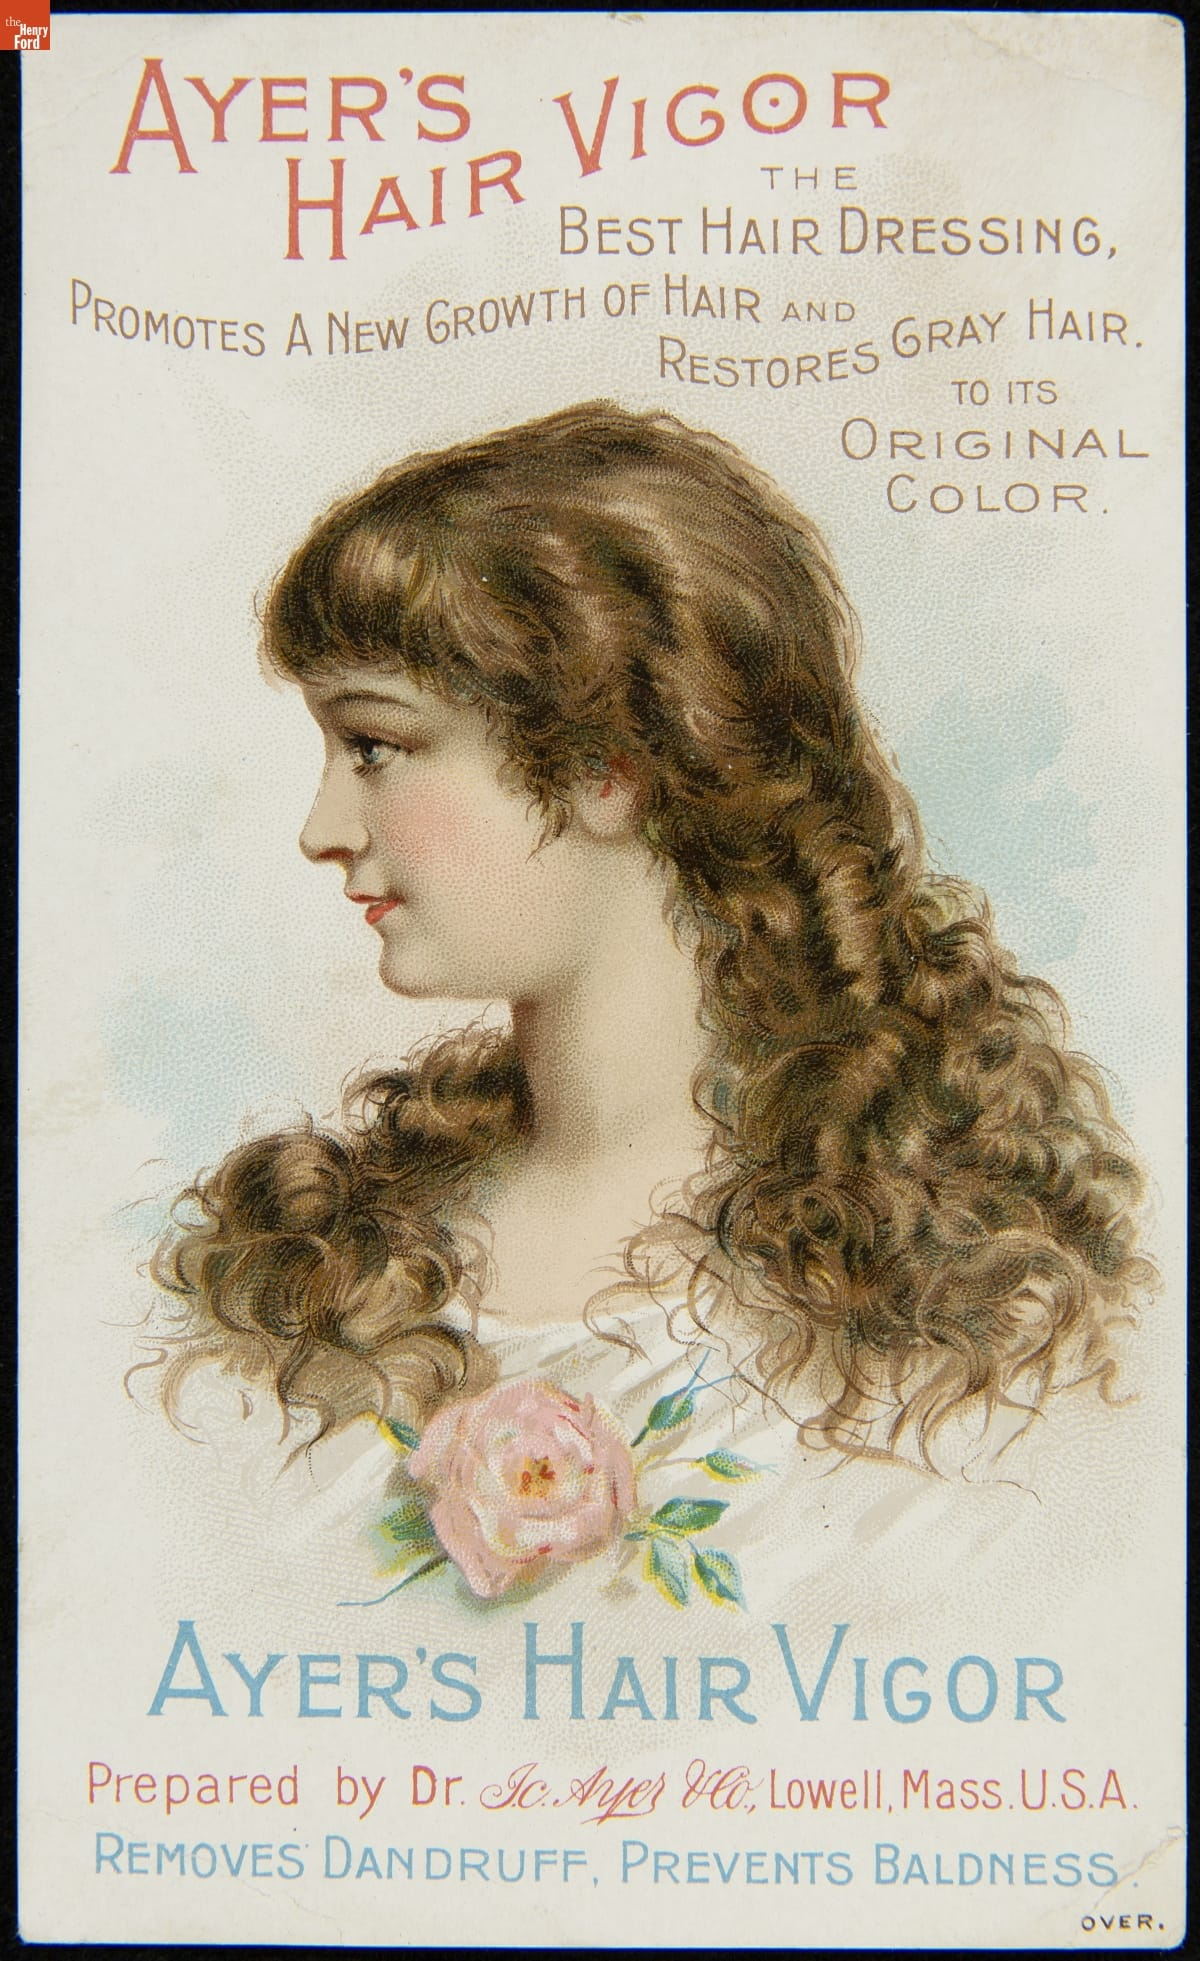 Chest and head of woman with long light brown hair and pink rose pinned to her chest; also contains text